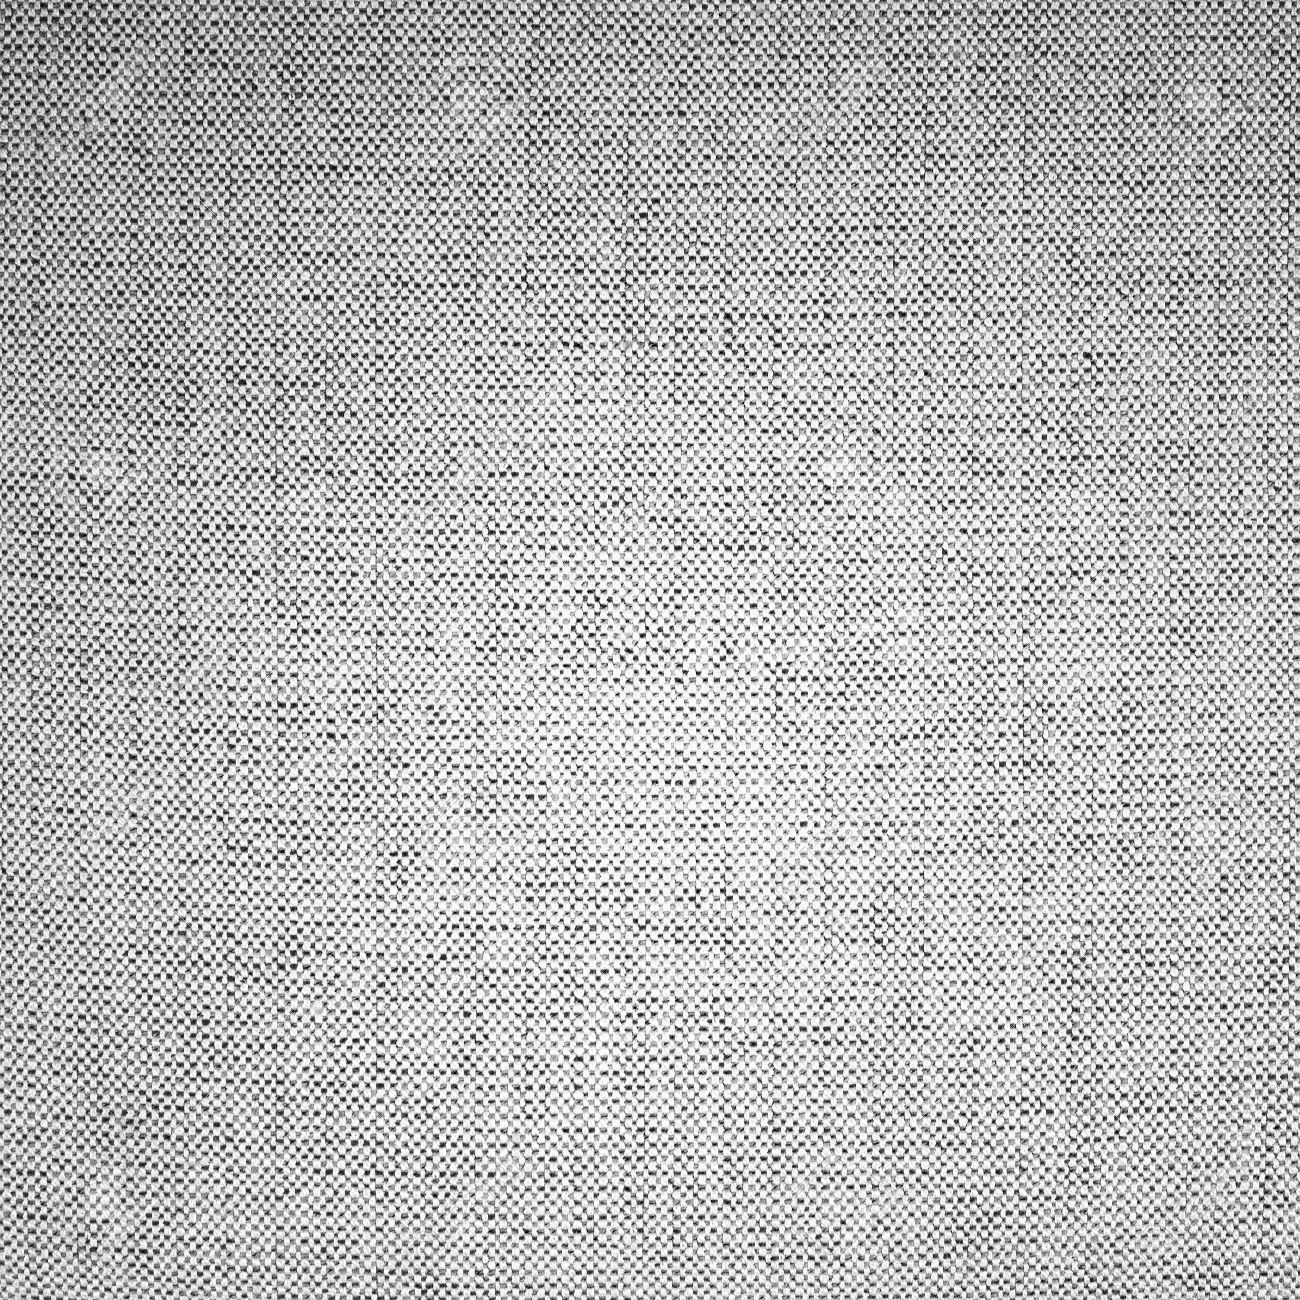 Sofa Fabric Grey Cloth Texture Background Part Of Sofa Fabric